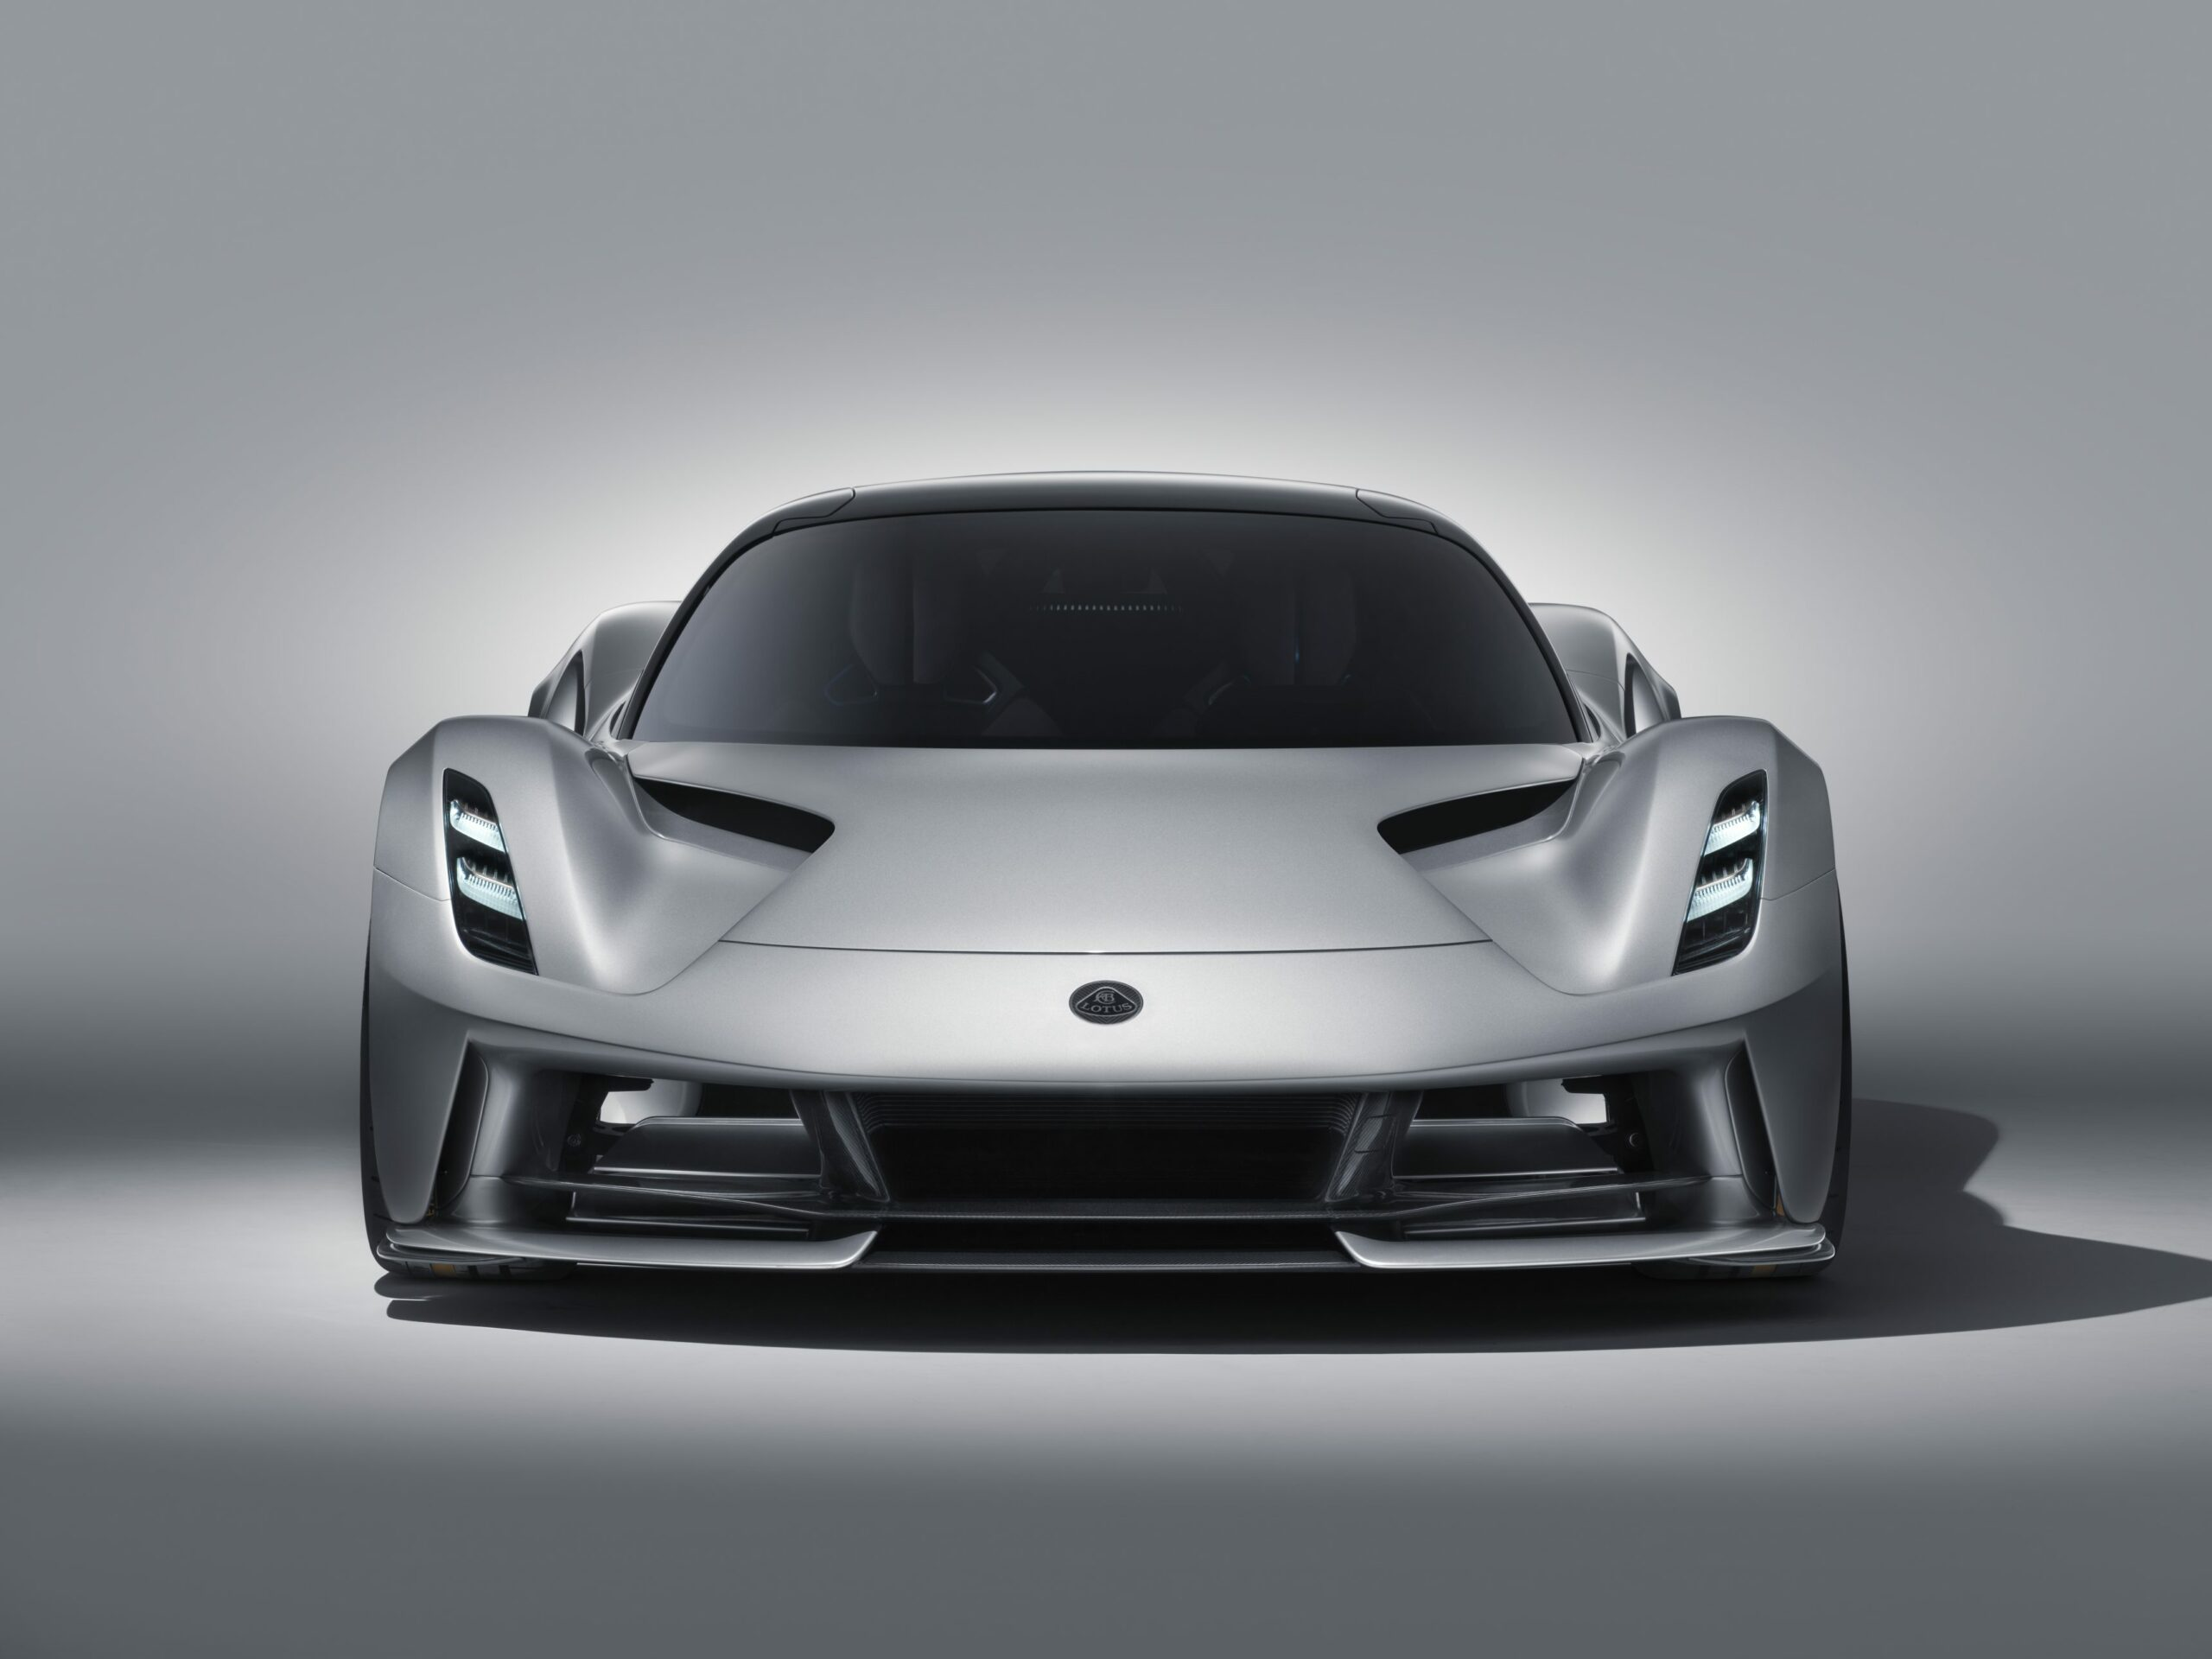 2020 Lotus Evija - Front End